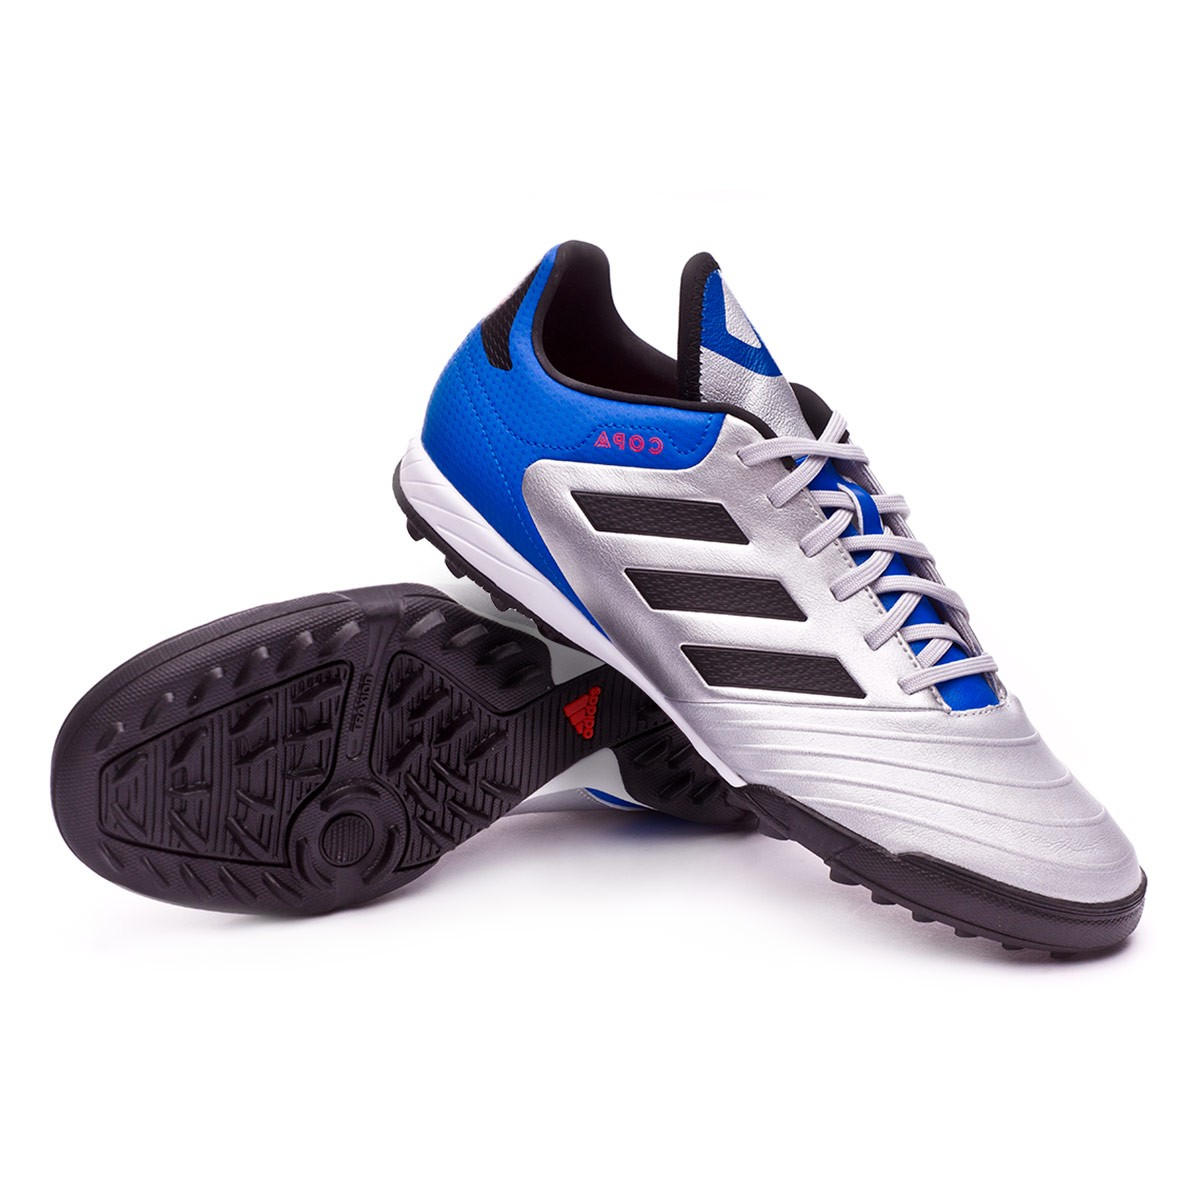 sports shoes 1b7f3 40c17 adidas Copa Tango 18.3 Turf Football Boot. Silver metallic-Core black-Football  blue ...